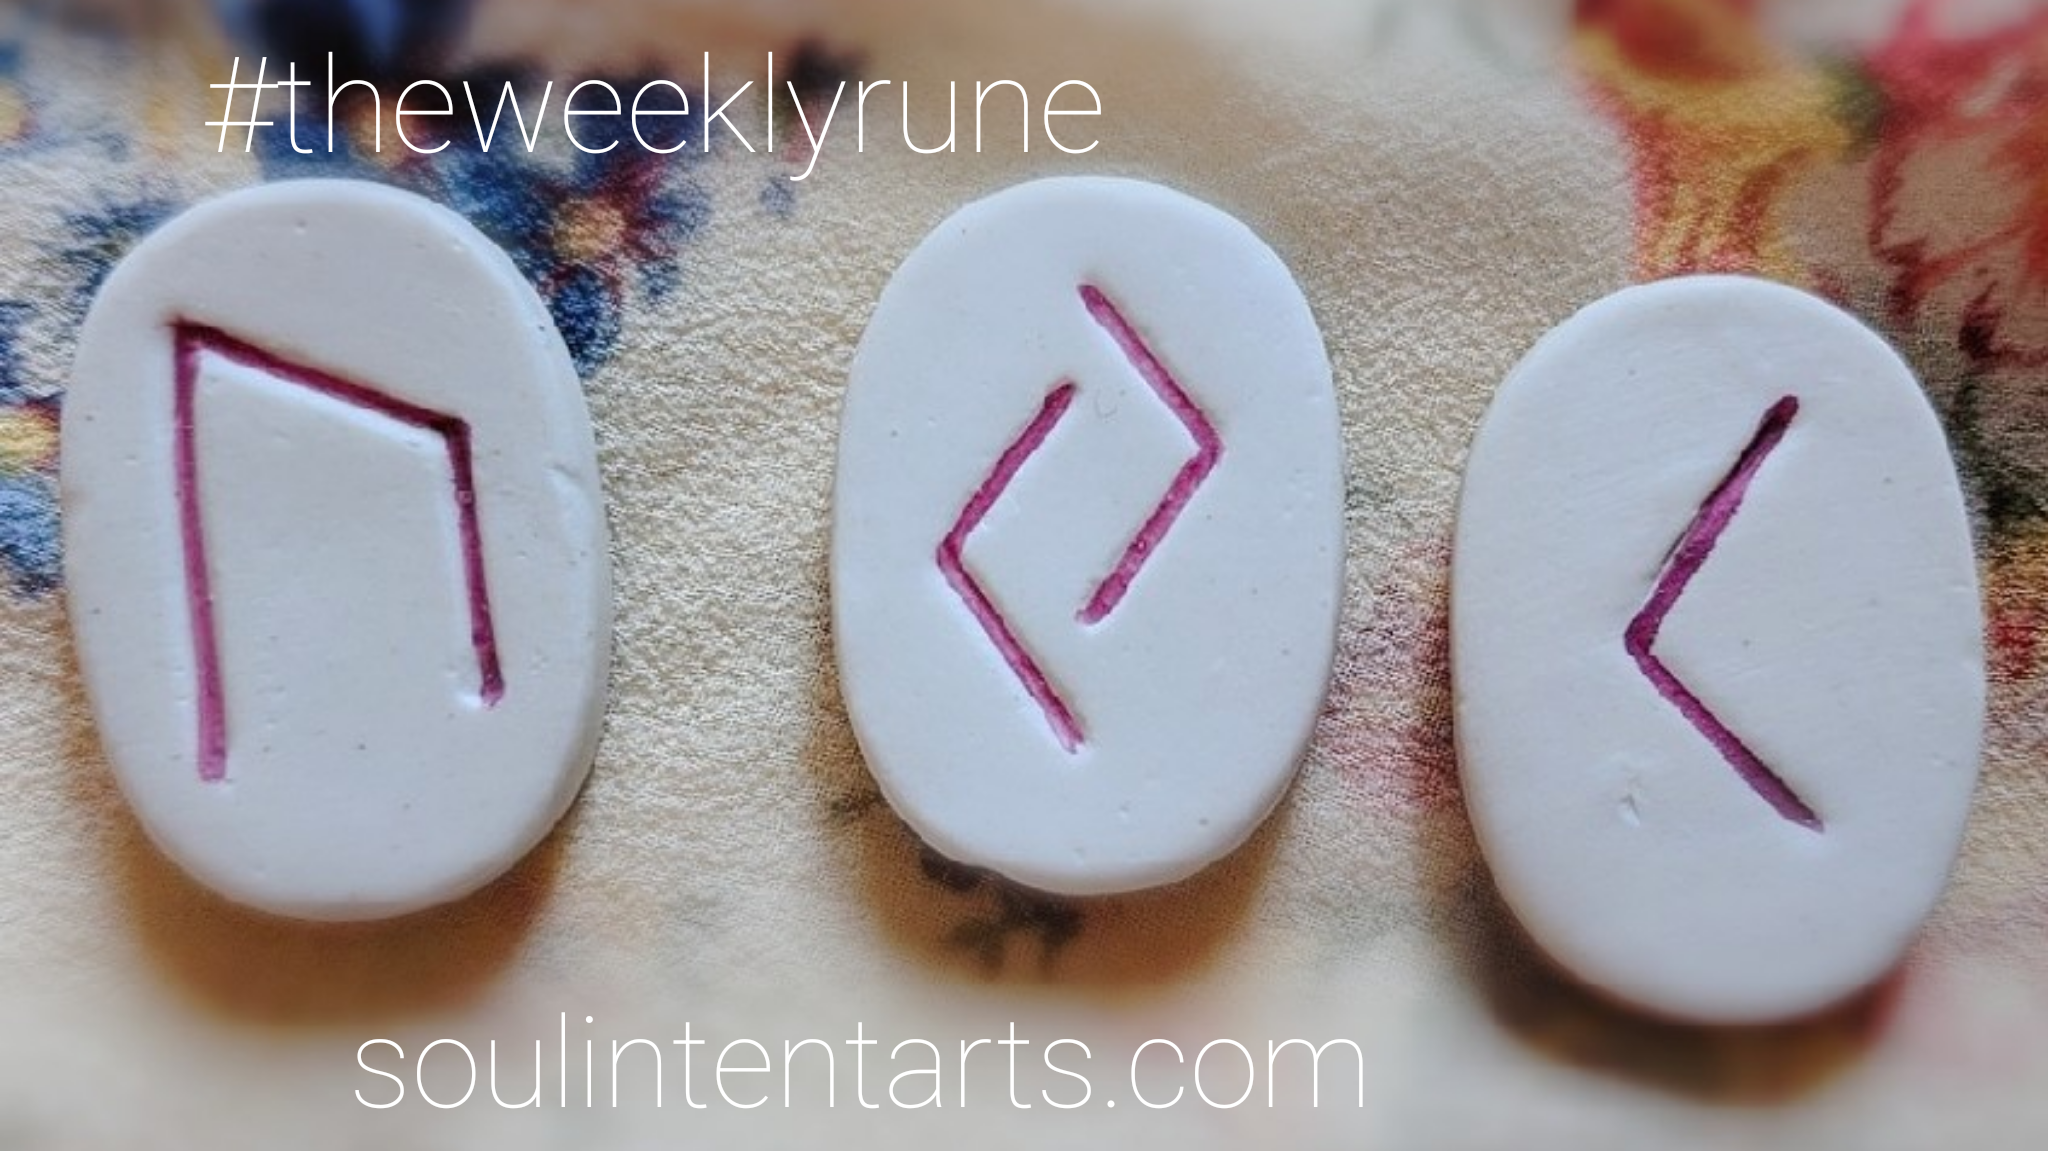 The Weekly Rune, Kenaz